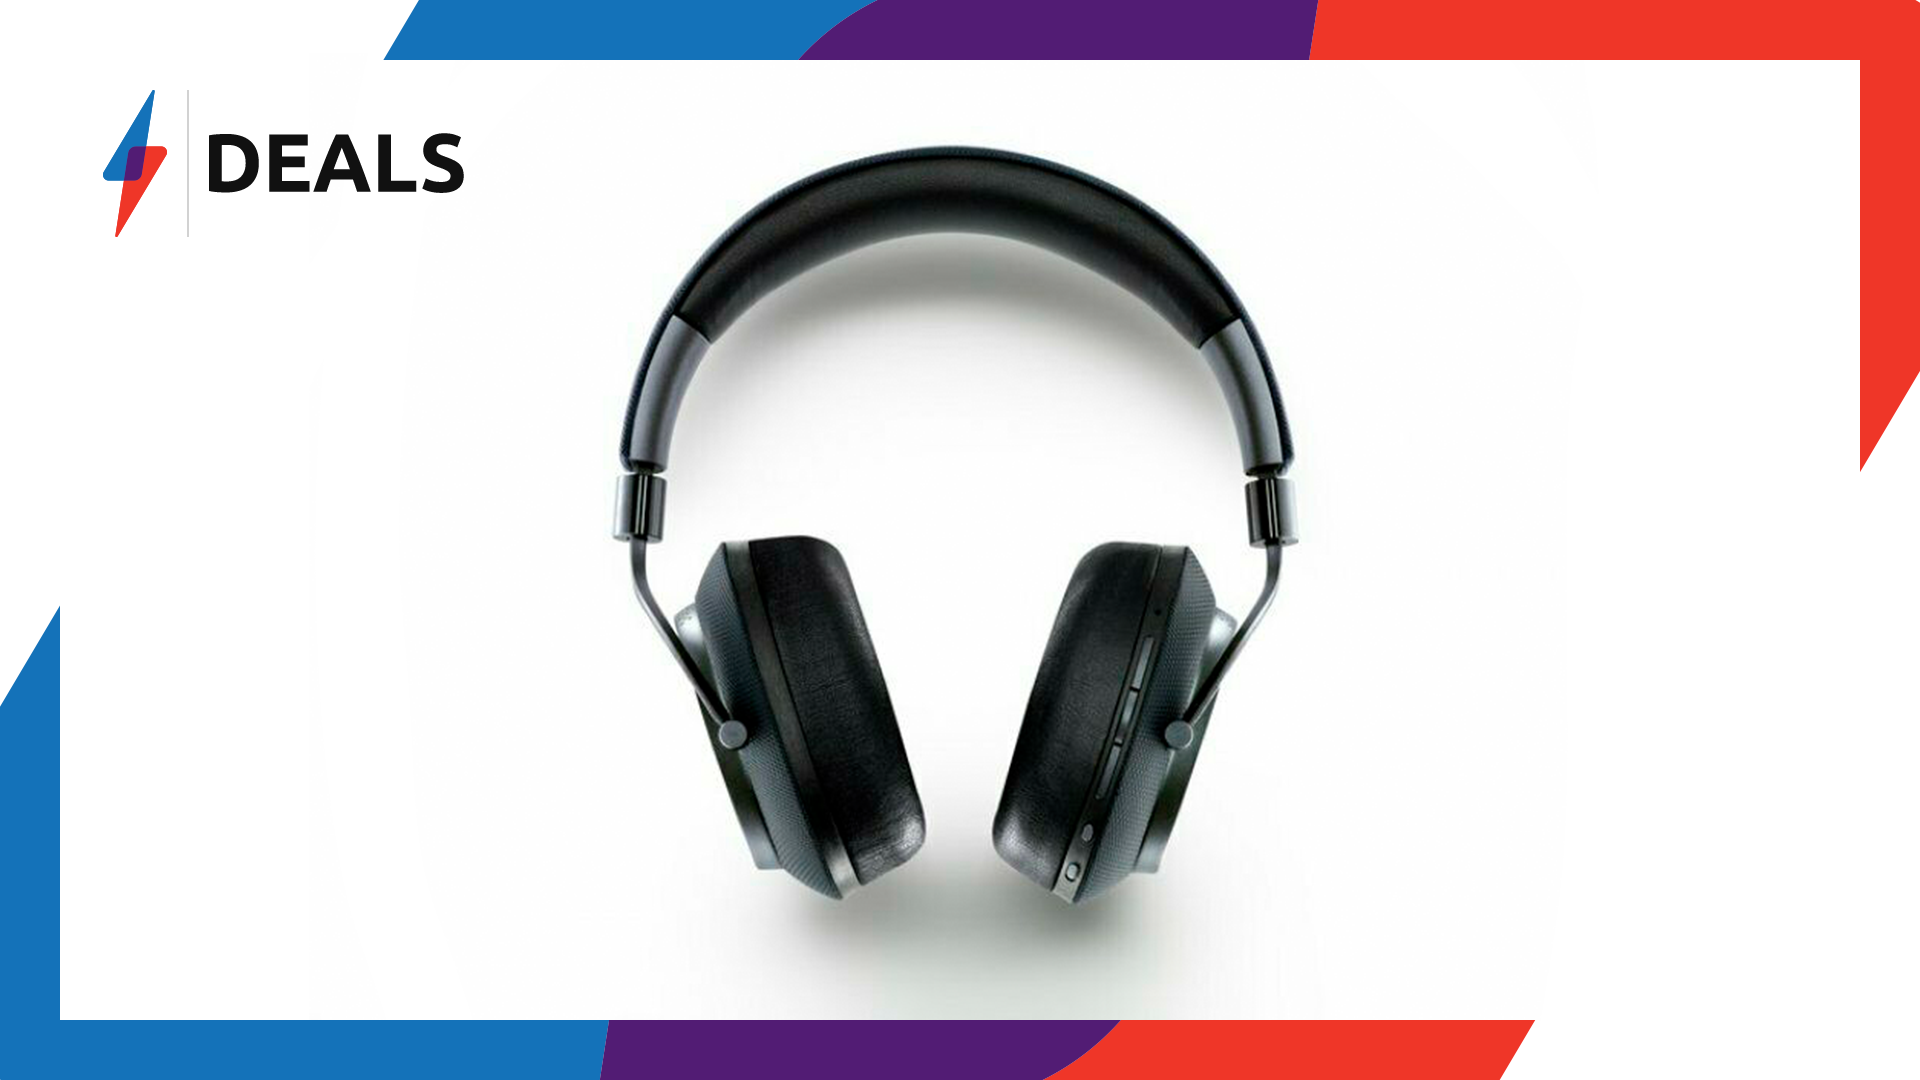 Buy the 10/10 rated Bowers and Wilkins PX headphones for under £210 for a limited time